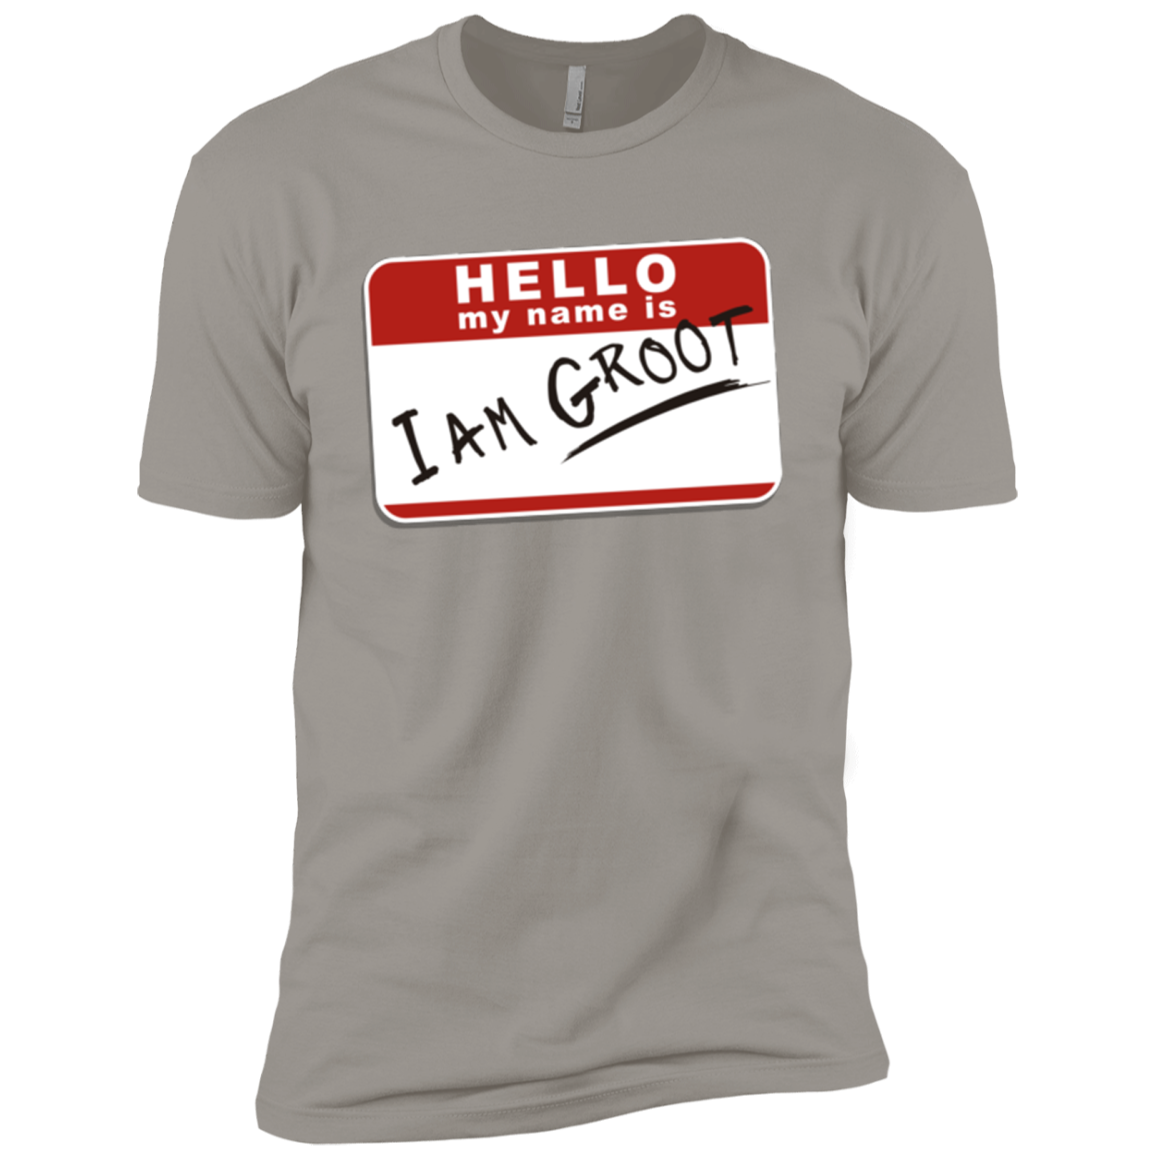 I am Groot Men's Premium T-Shirt